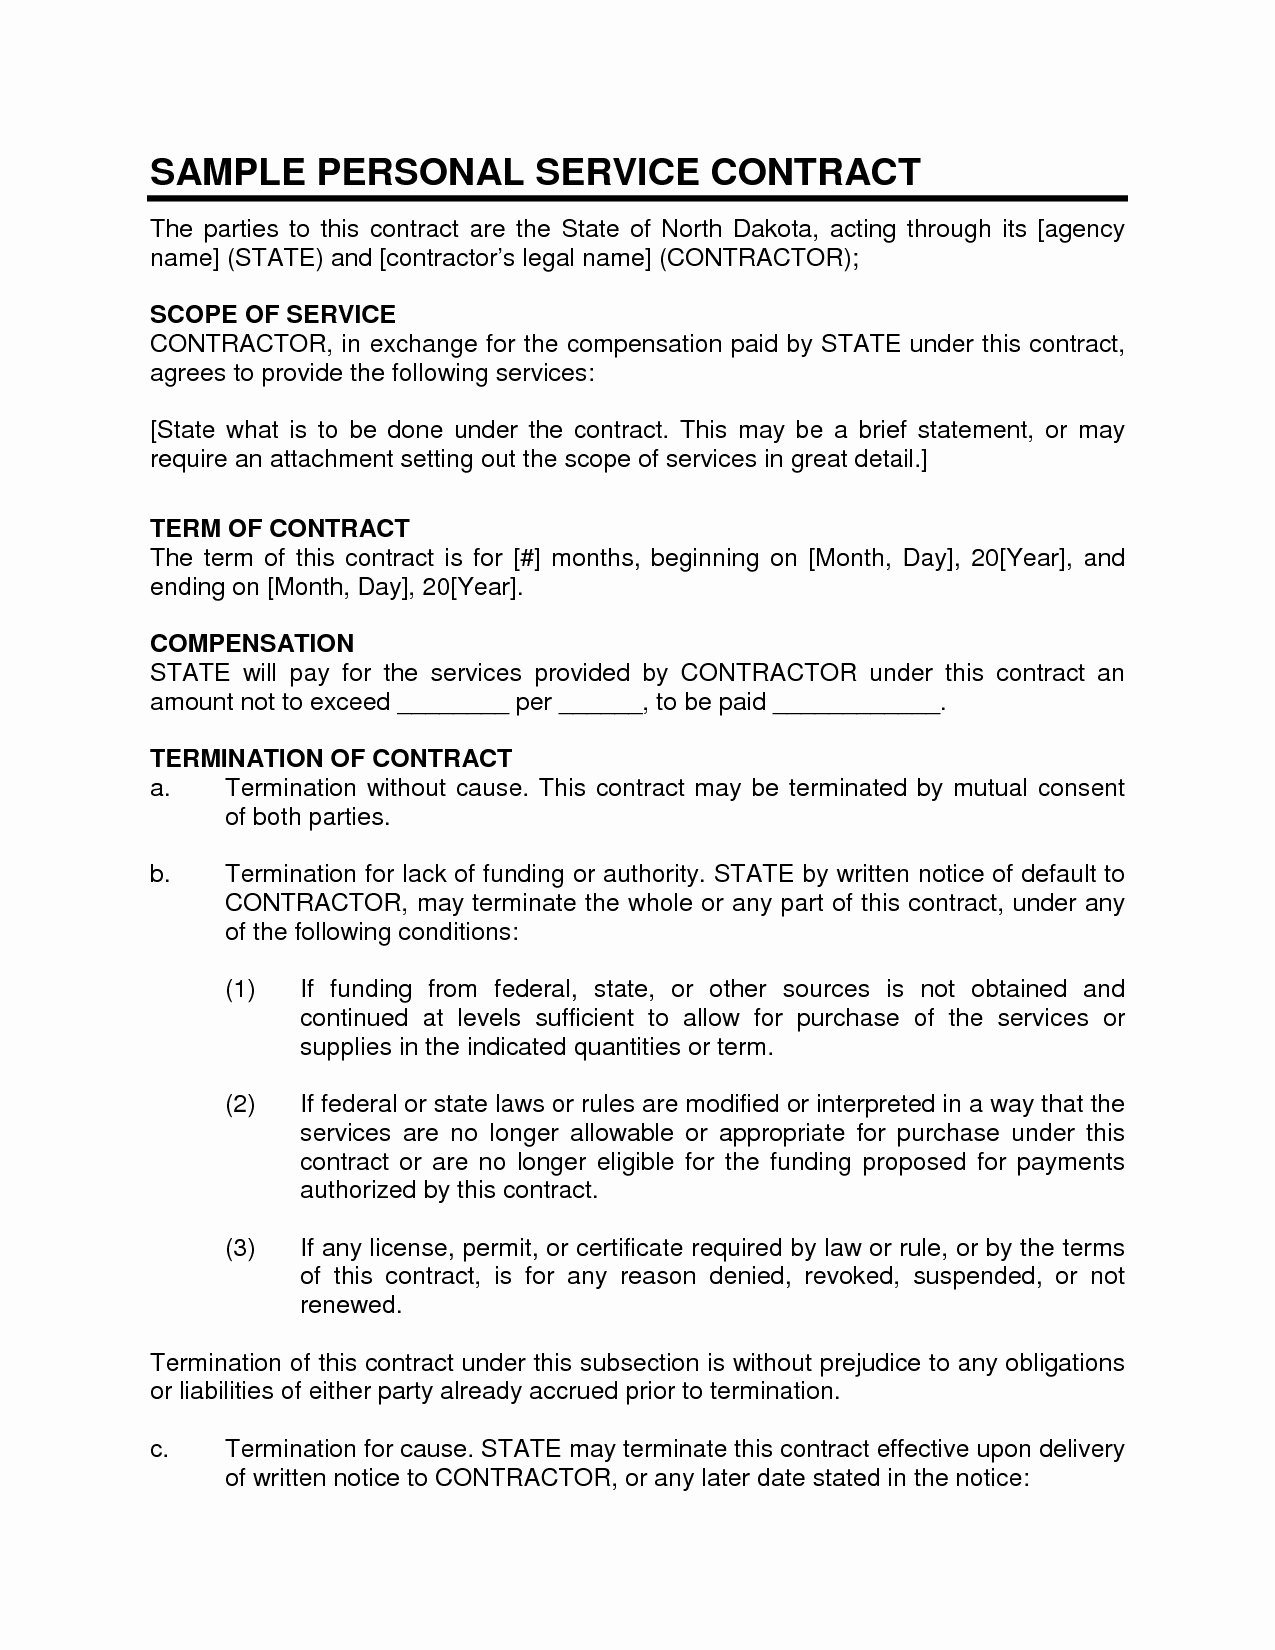 Personal Service Contract Template Elegant Service Contract Sample Personal Service Contract